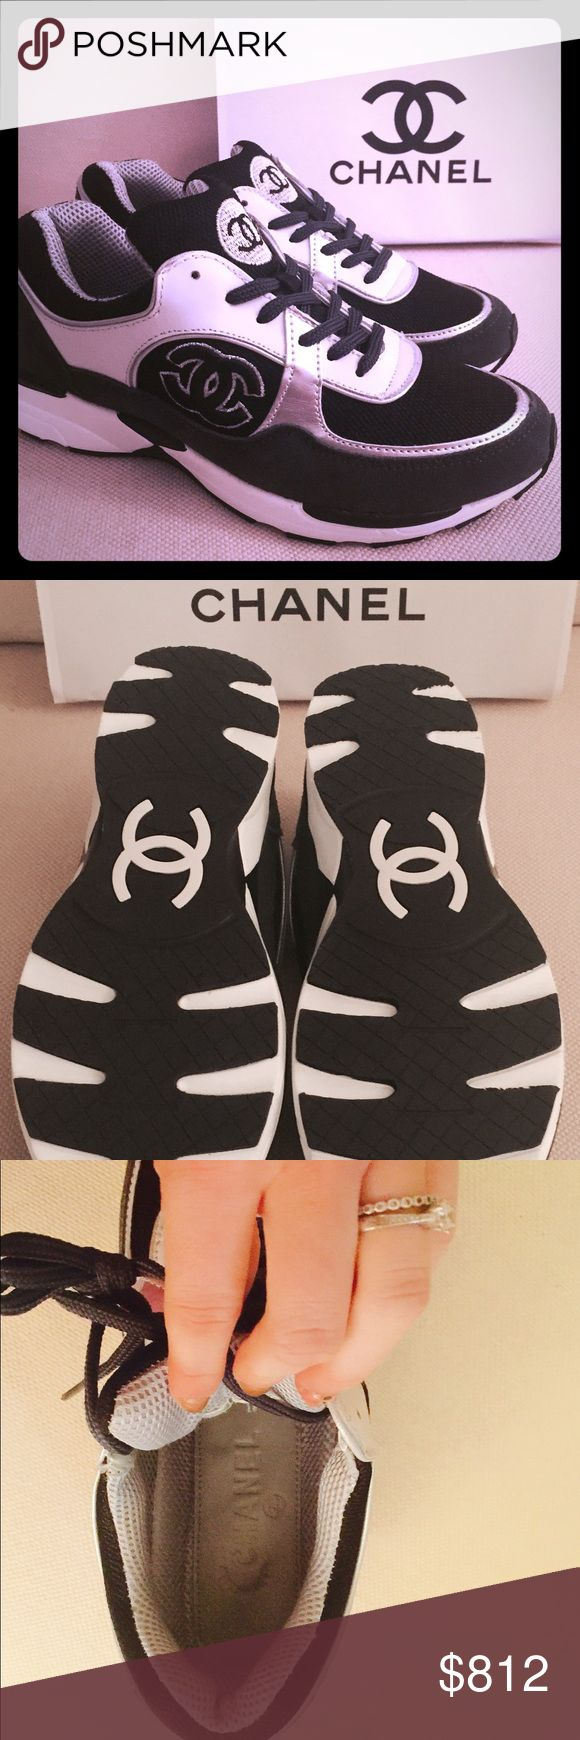 Luxury Chanel tennis shoes mimic style New/excellent condition. Work once but they run small and I don't quite fit into them. Has a cool green  and metalic looking color to them in certain lighting CHANEL Shoes Athletic Shoes